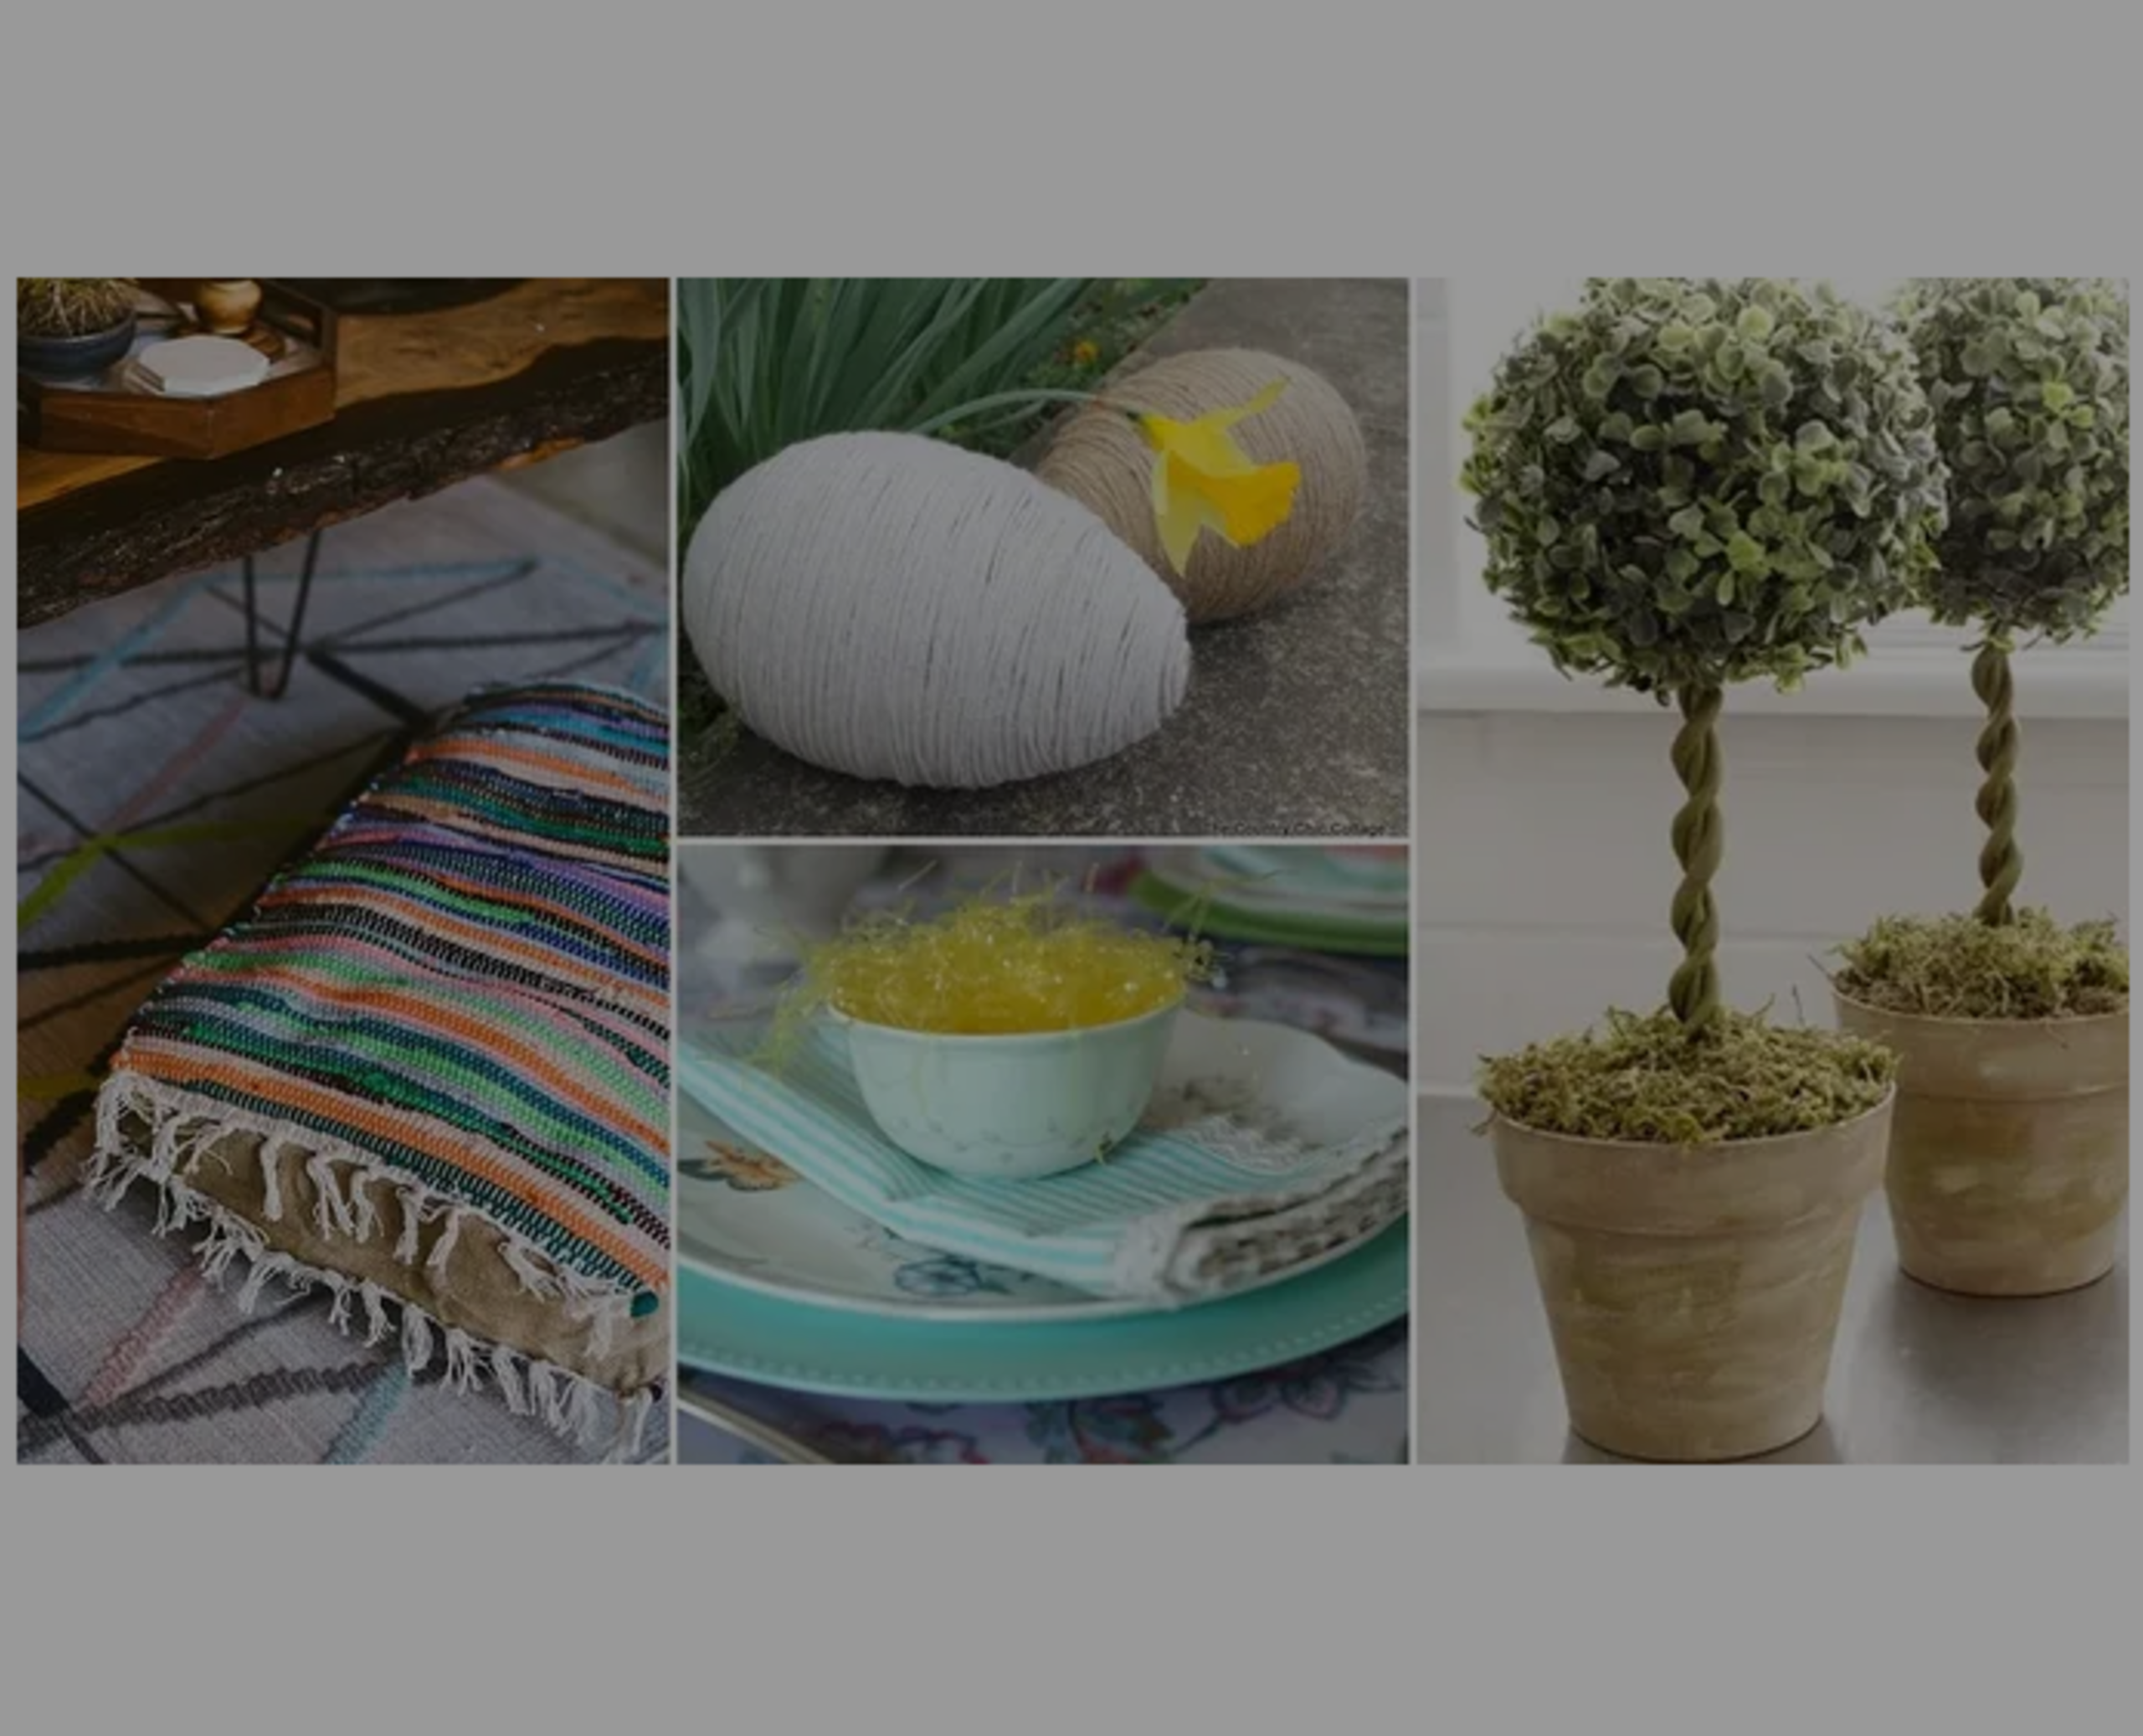 7 Spring Decor Ideas From Your Local Dollar Store!